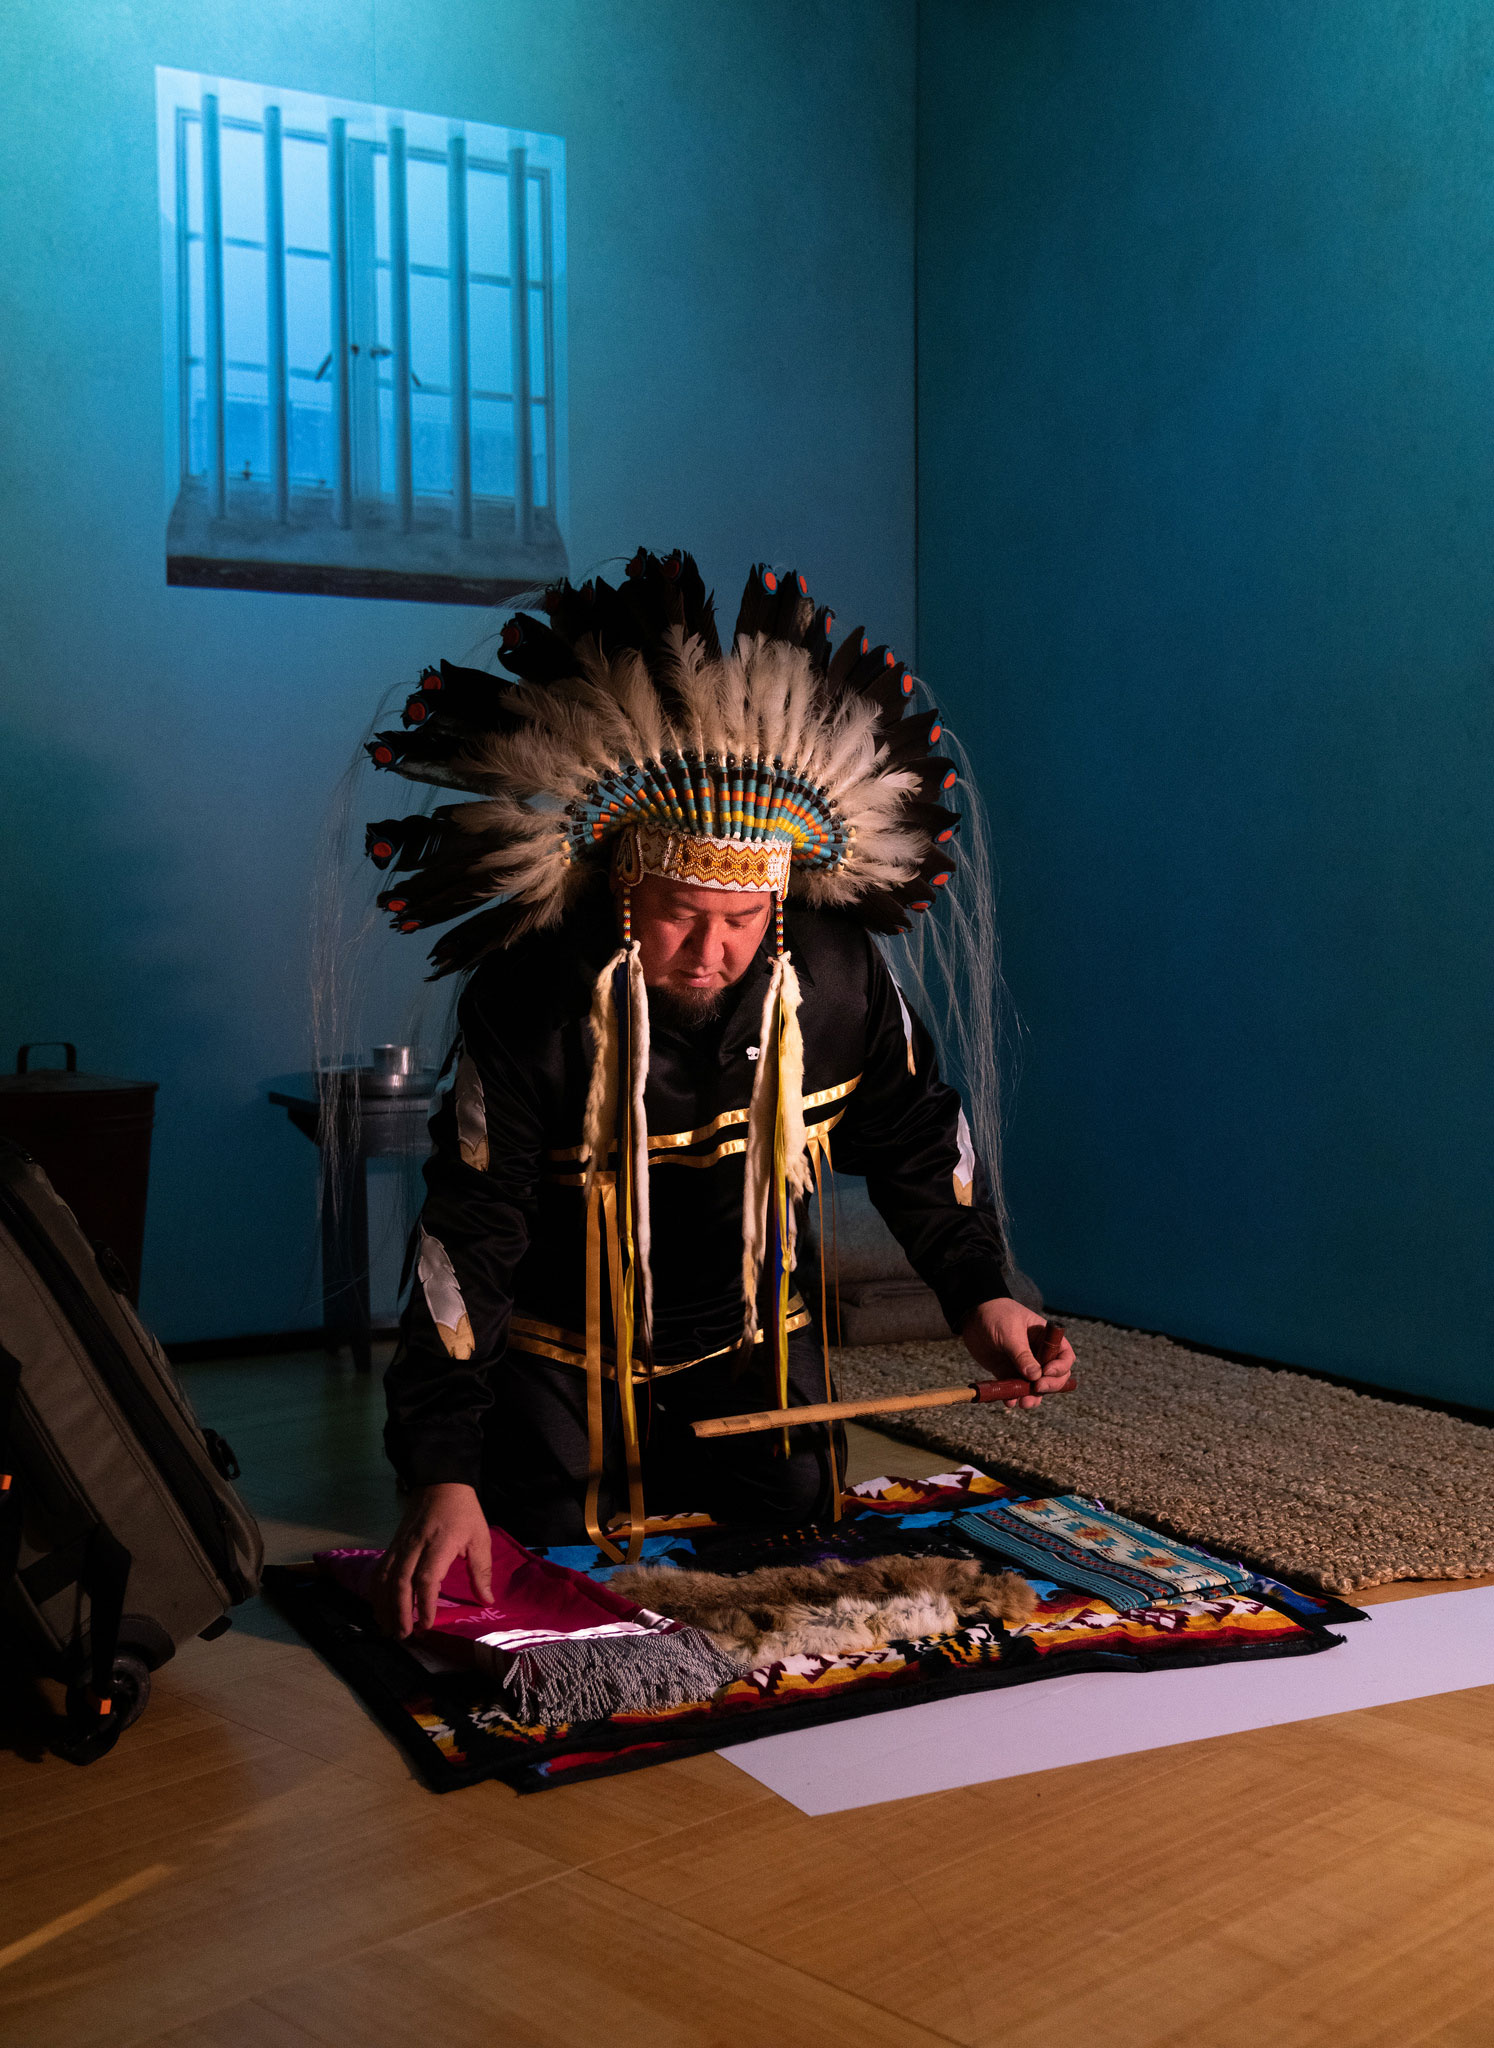 An male figure wearing a feather head-dress spreads a blanket with sacred objects and medicine.